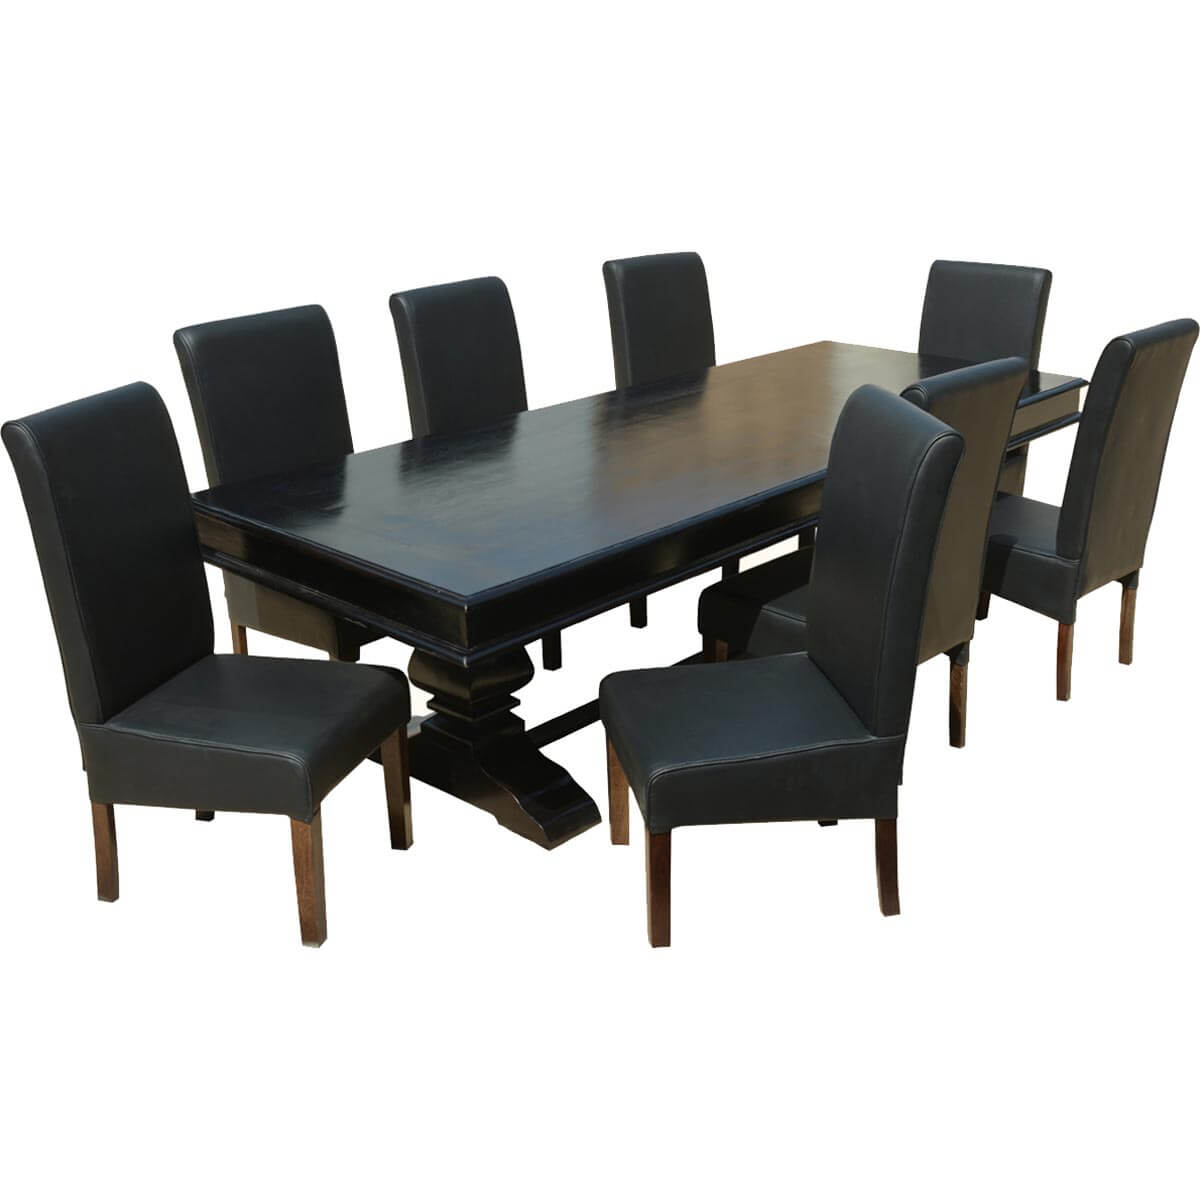 Executive Elegance Wood & Leather 94 Trestle Dining Table & 8 Chairs